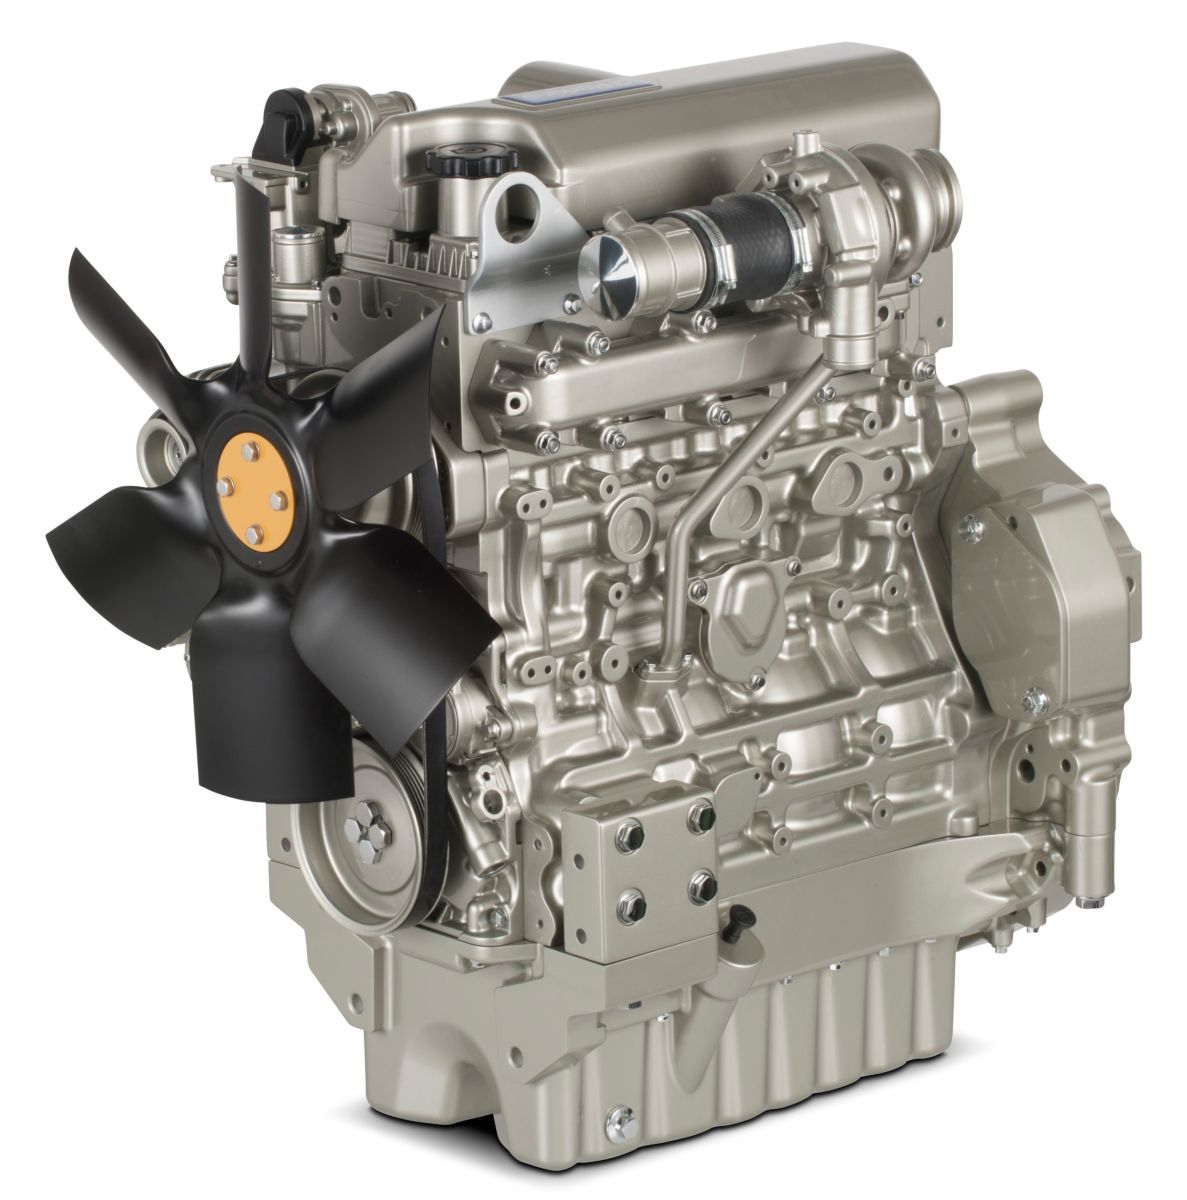 New Perkins® Syncro 3.6 litre agricultural tractor engine unveiled at EIMA